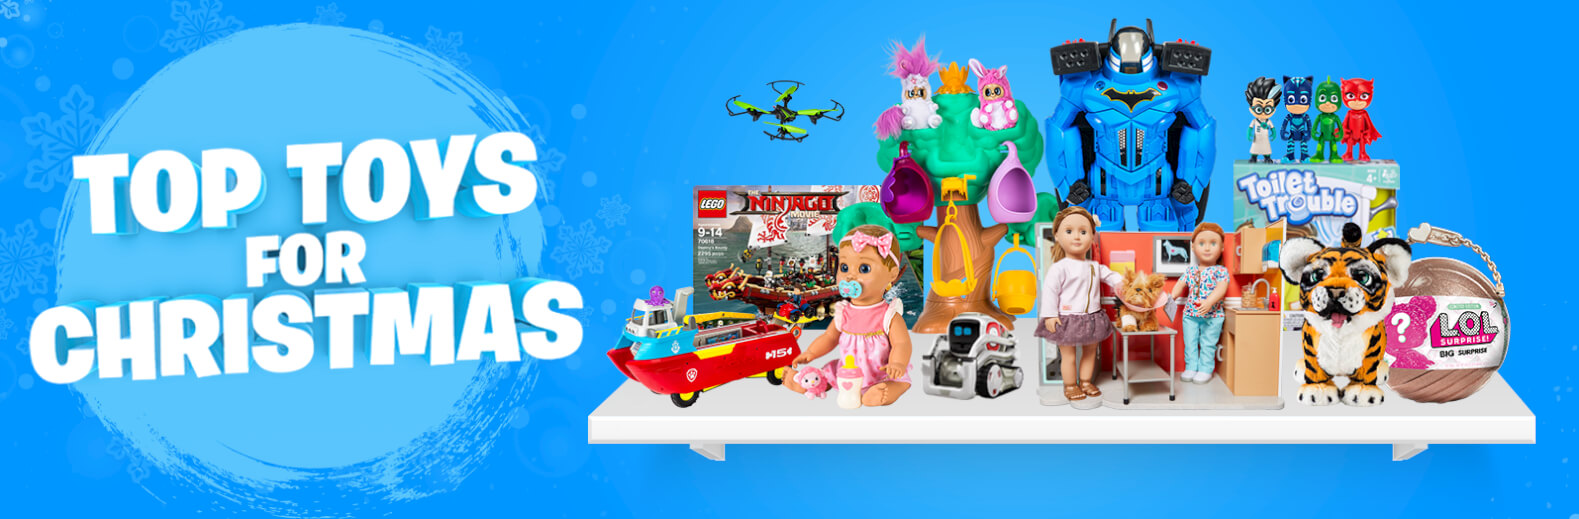 Top-Toys-Christmas-Banner-Blog